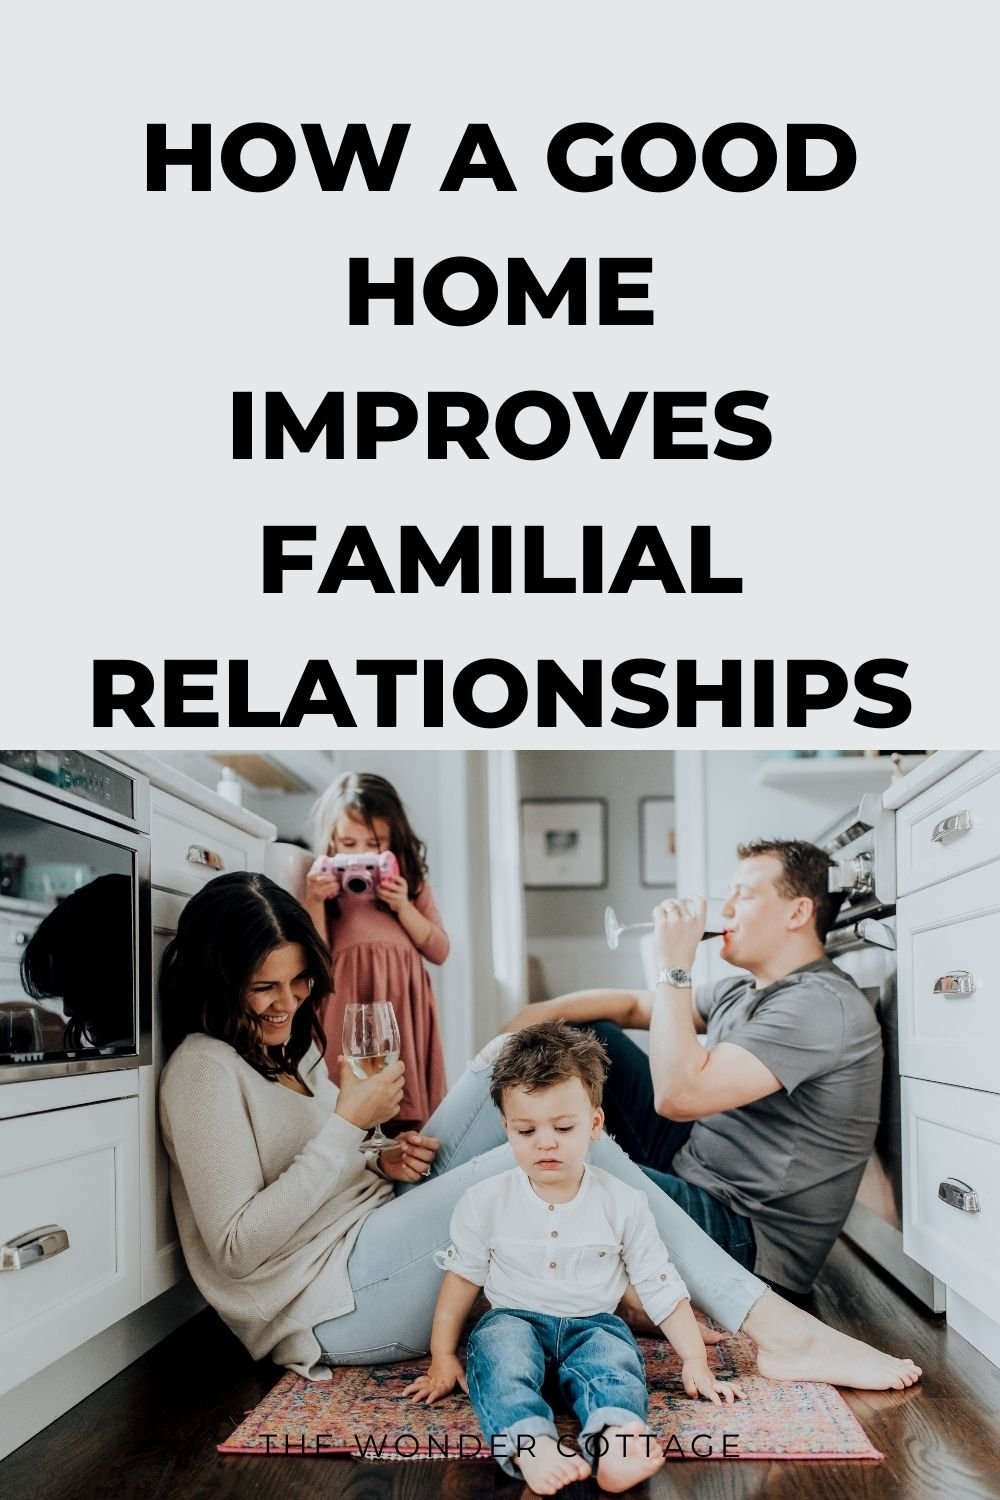 how a good home improves familial relationships